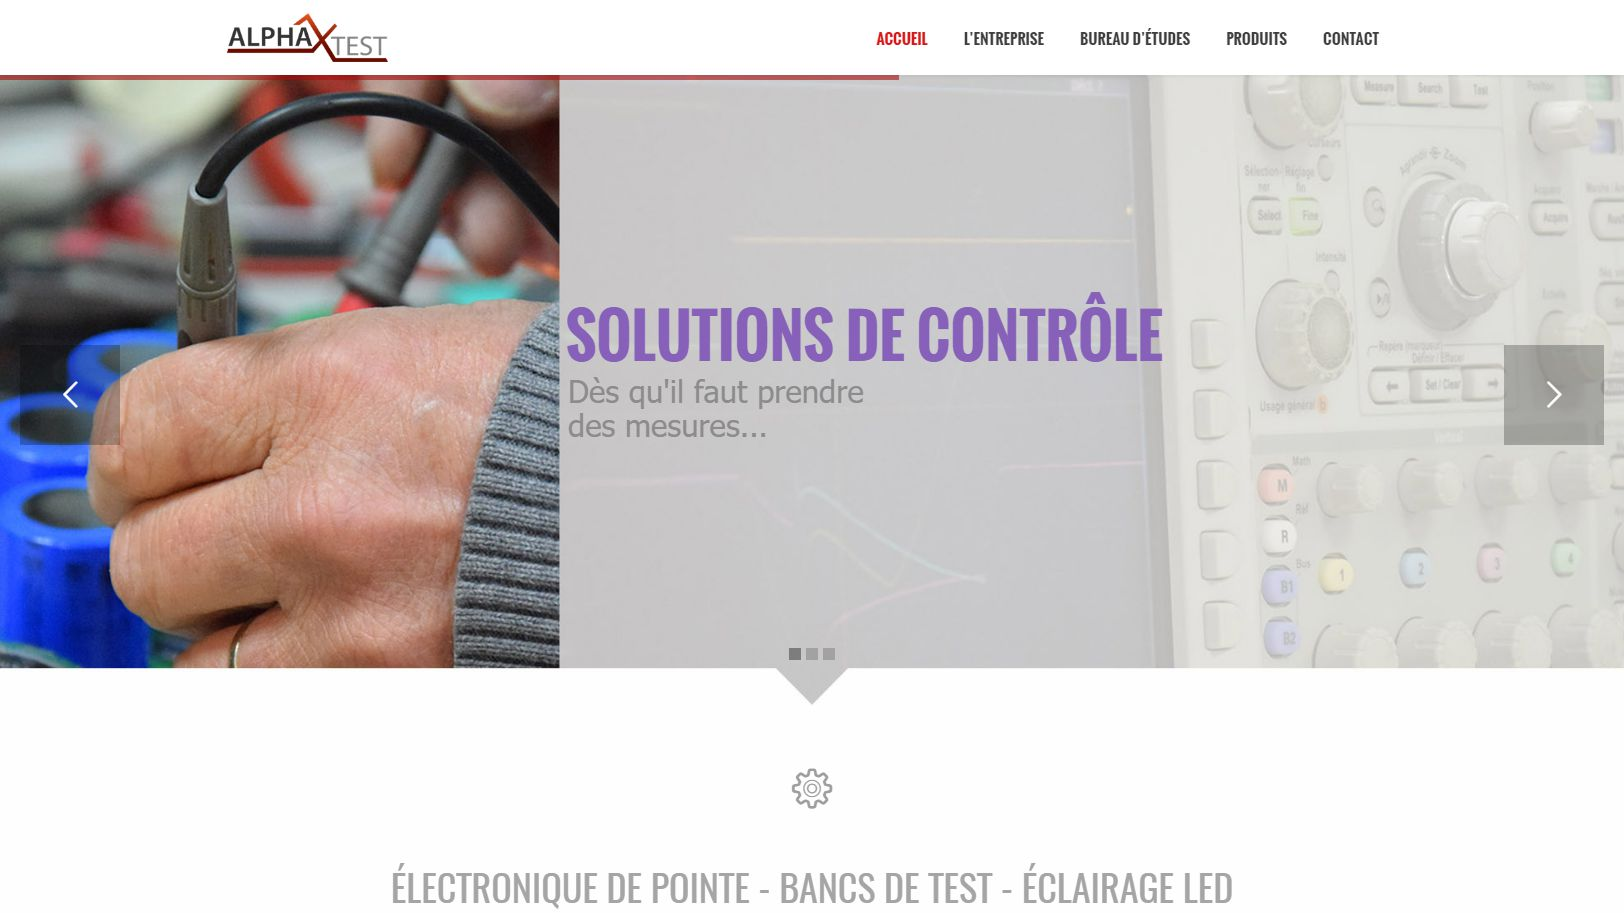 ALPHATEST - Électronique de pointe Bancs de test Éclairage LED